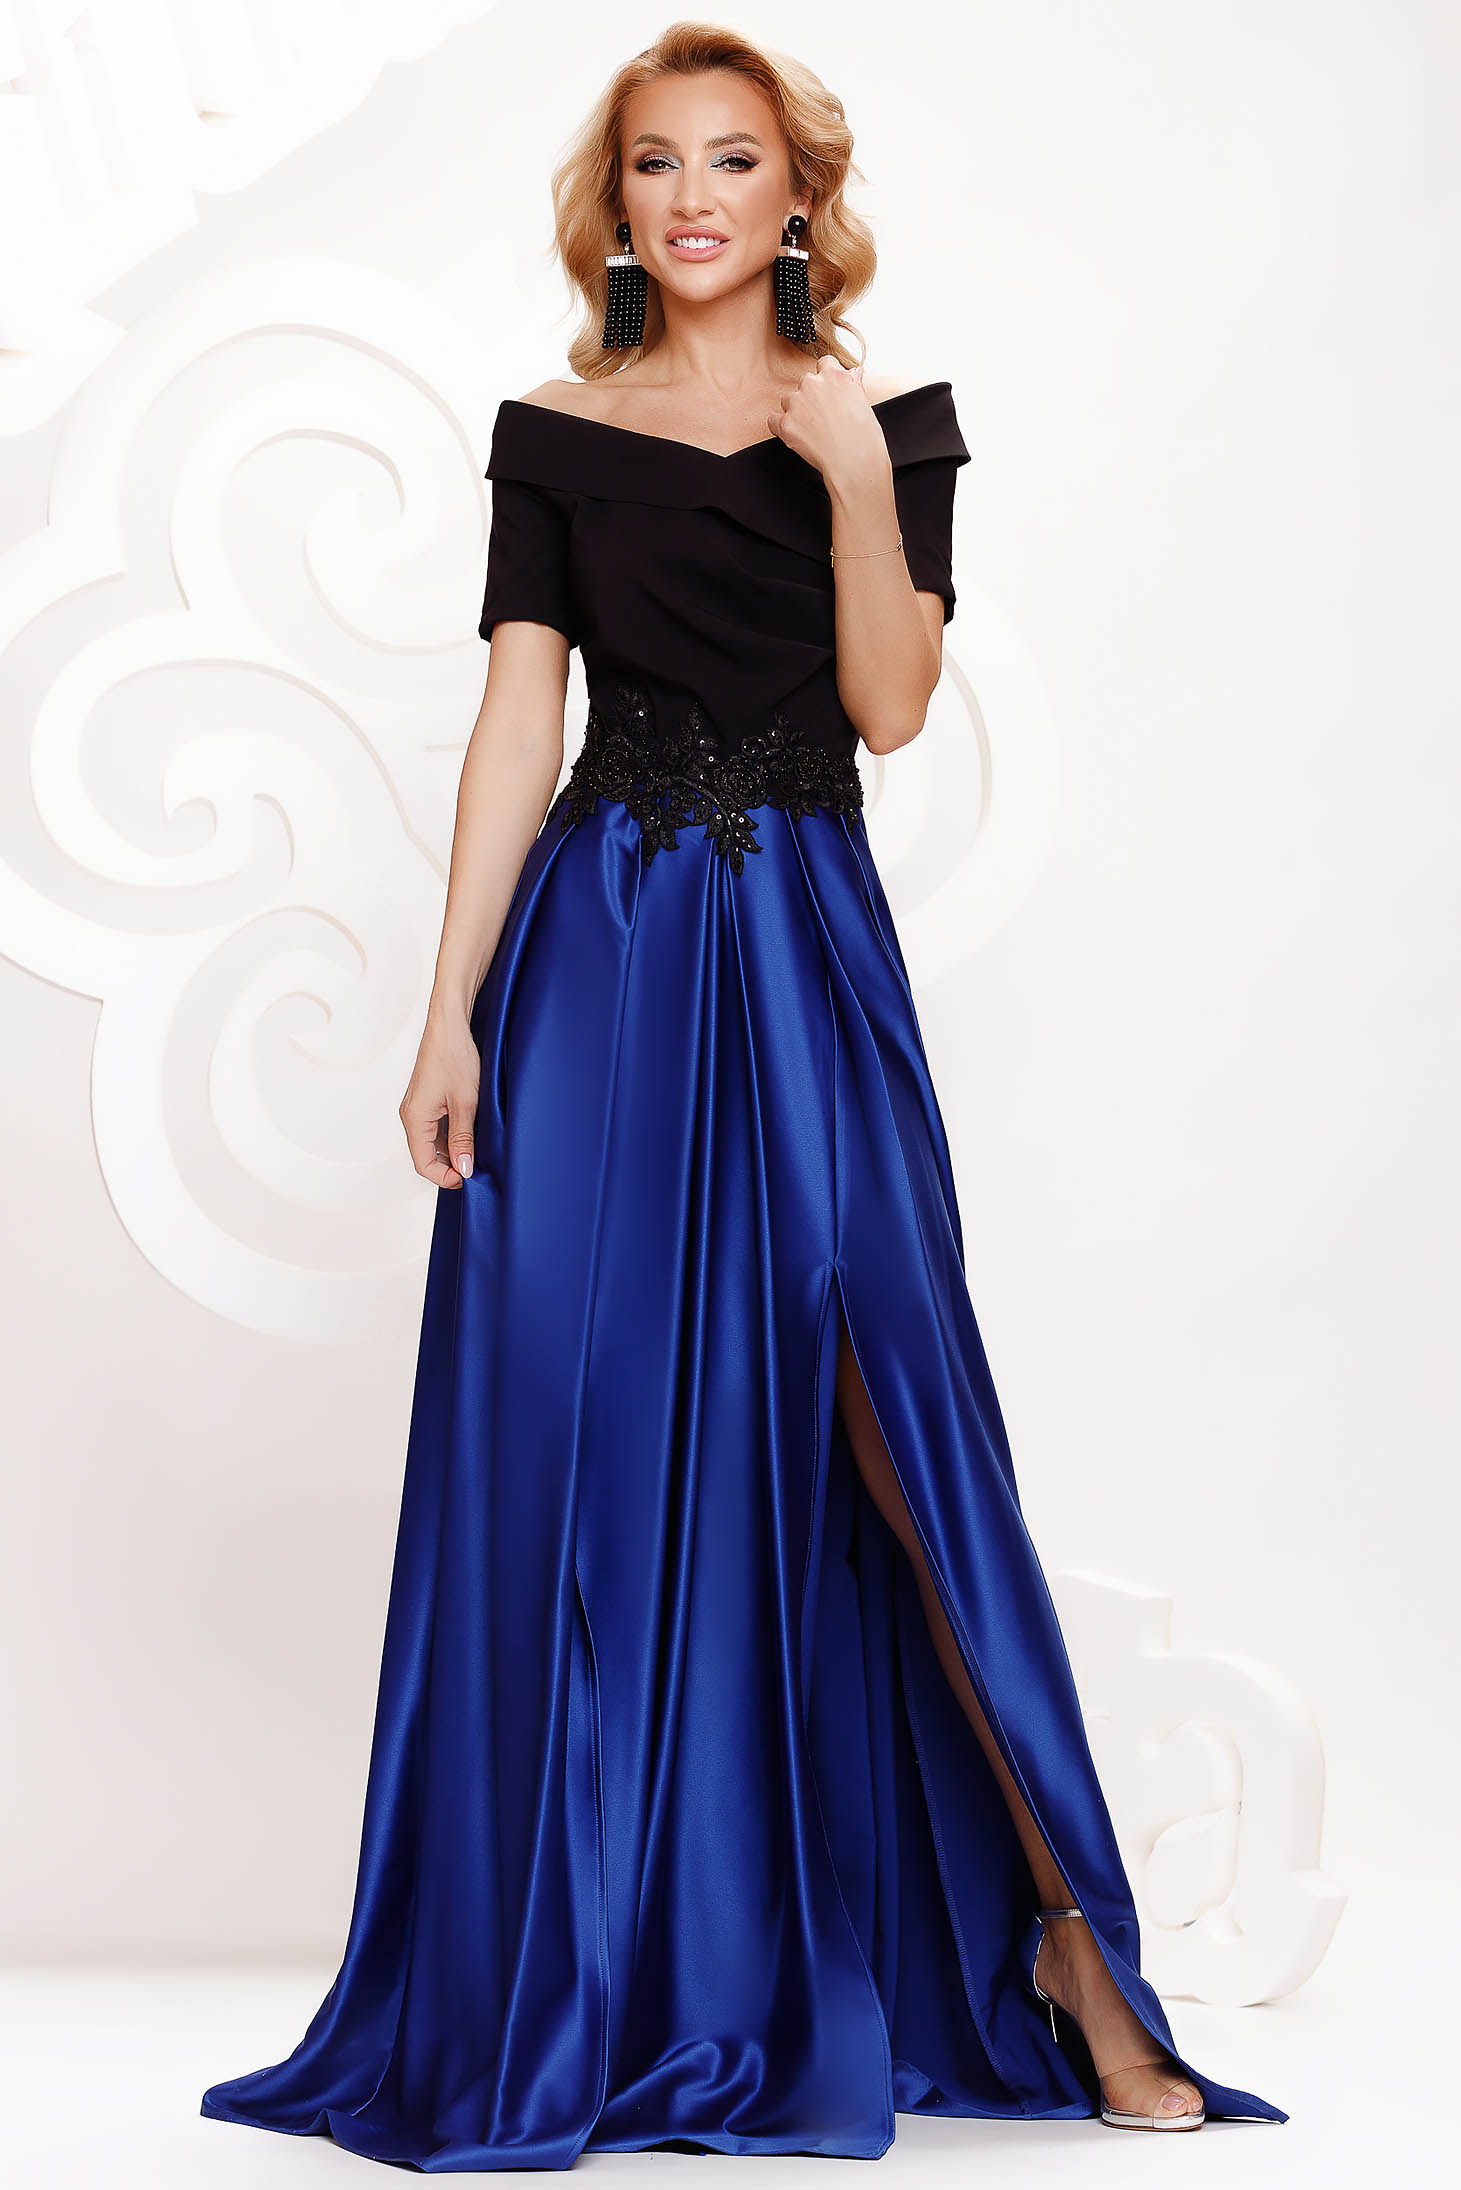 Occasional blue dress with satin fabric texture embroidery details